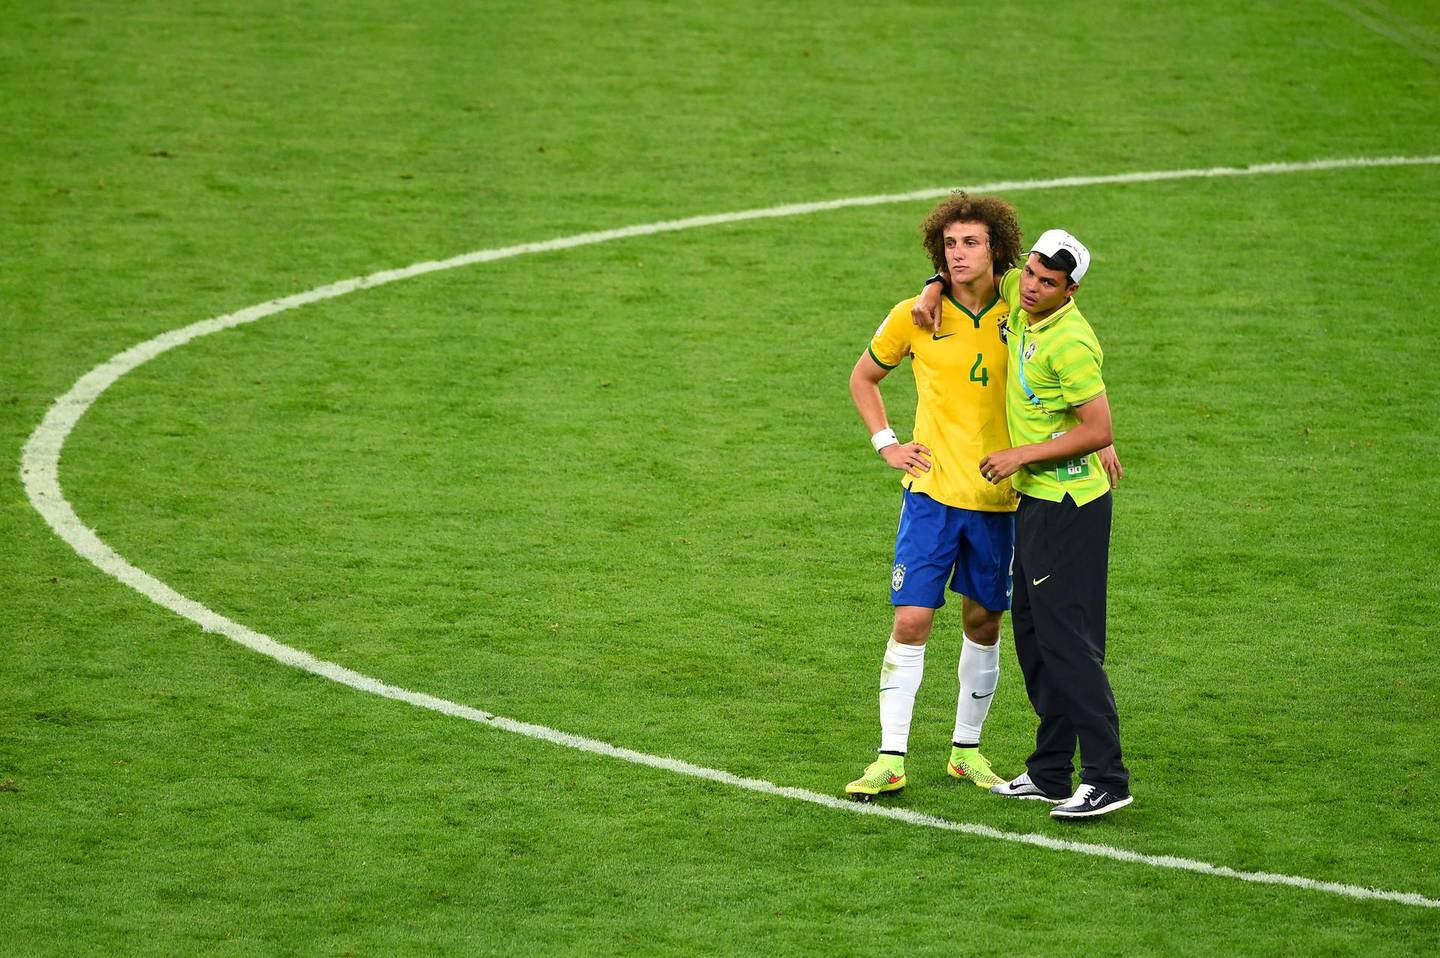 BELO HORIZONTE, BRAZIL - JULY 08:  Thiago Silva of Brazil consoles David Luiz after Germany's 7-1 victory during the 2014 FIFA World Cup Brazil Semi Final match between Brazil and Germany at Estadio Mineirao on July 8, 2014 in Belo Horizonte, Brazil.  (Photo by Jamie McDonald/Getty Images)